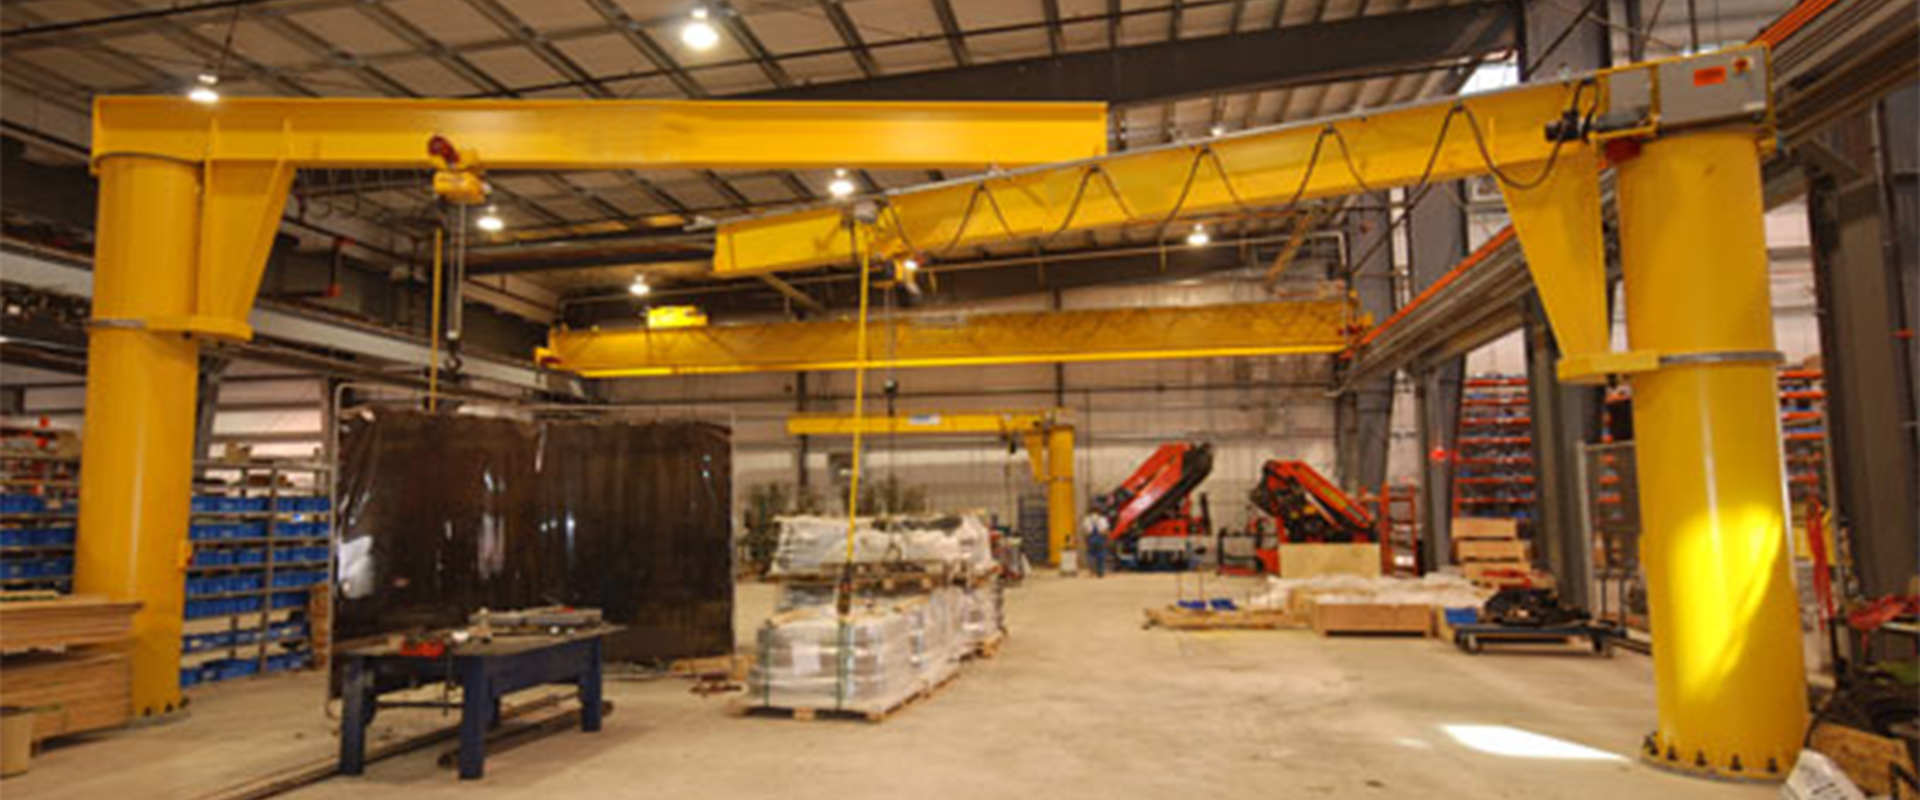 Overhead Cranes Pakistan : Jib tower cranes pakistan elevator lifting and access